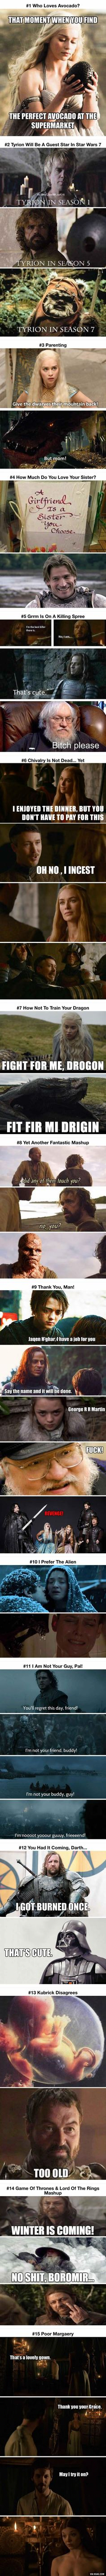 15 Best Game Of Thrones Jokes Ever - 9GAG